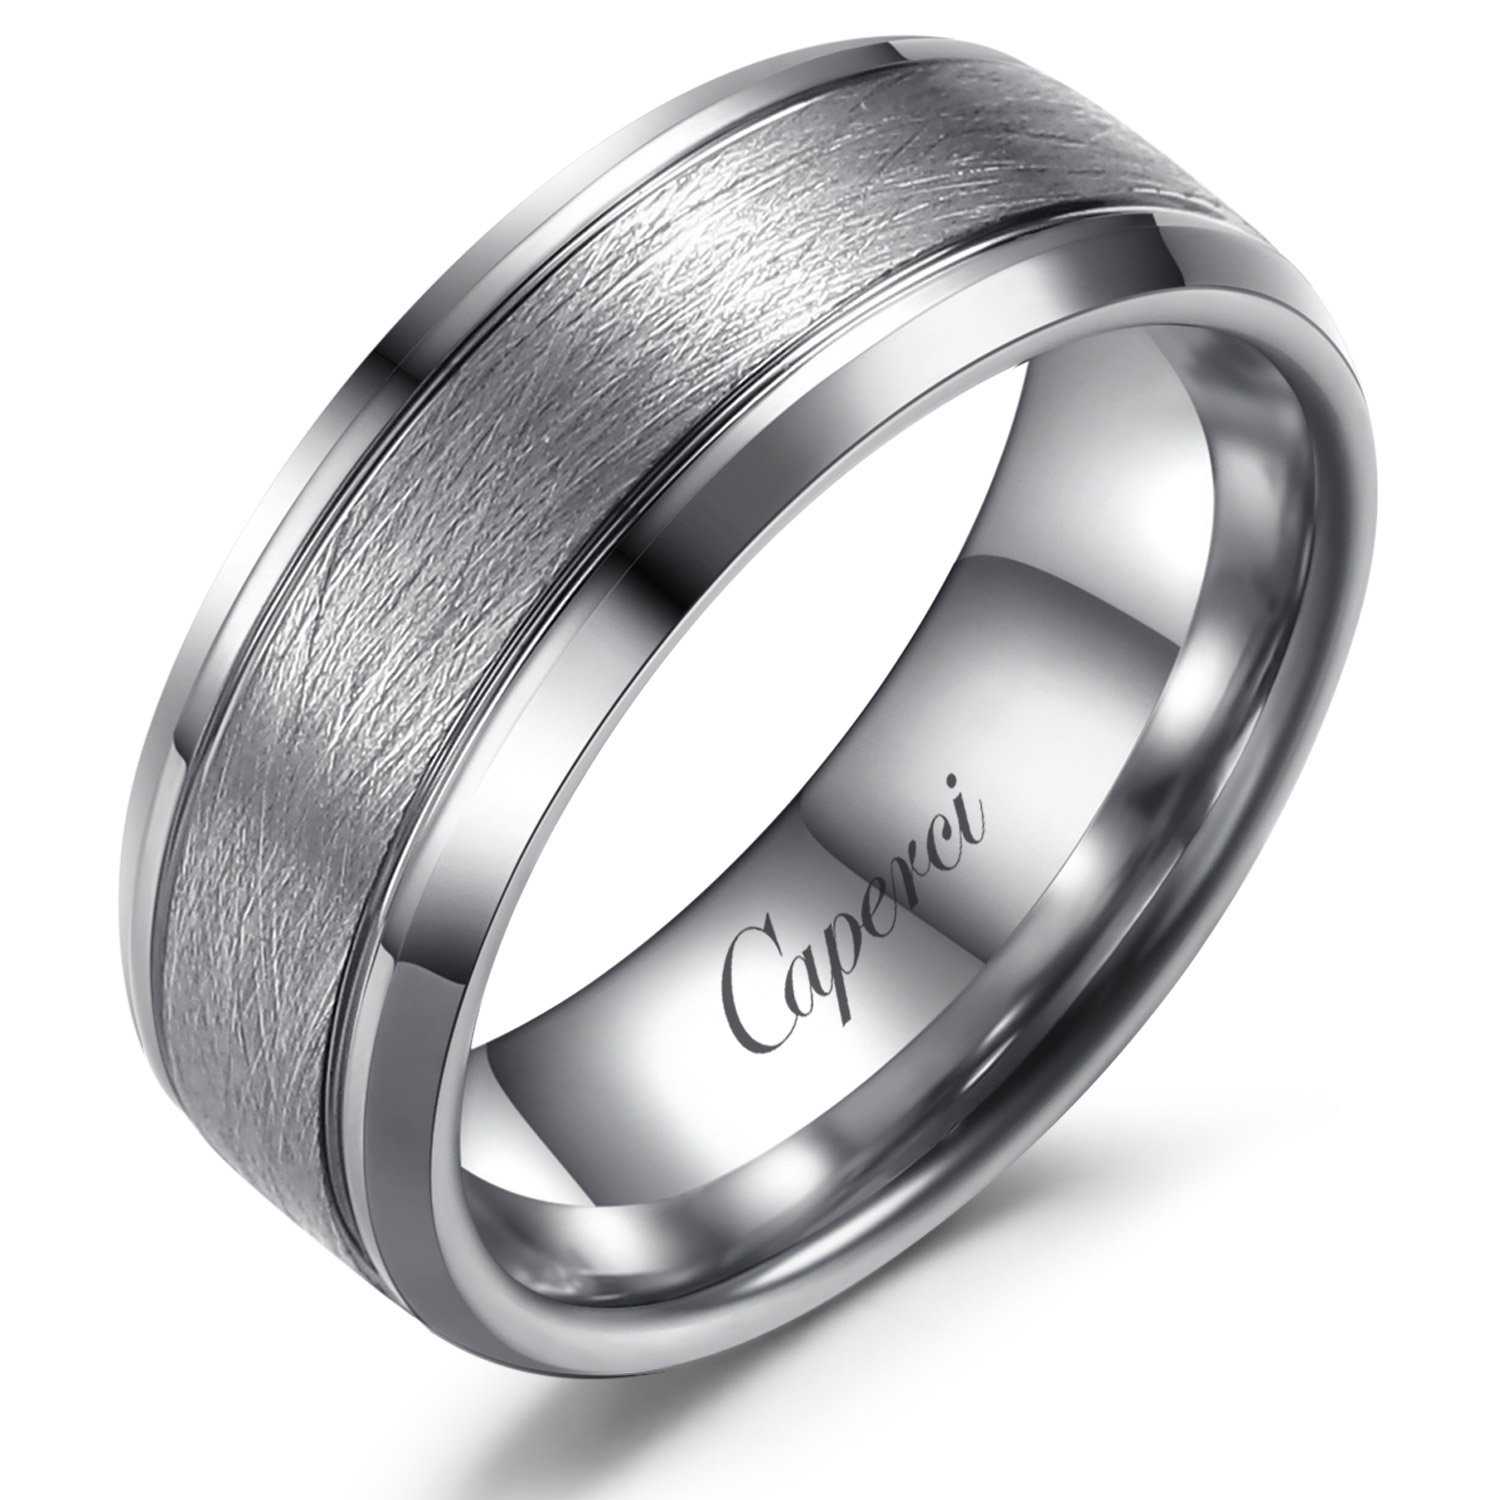 Caperci 8mm Tungsten Carbide Ring Wedding Band for Men Brushed Finish Beveled Comfort Fit Size 12.5